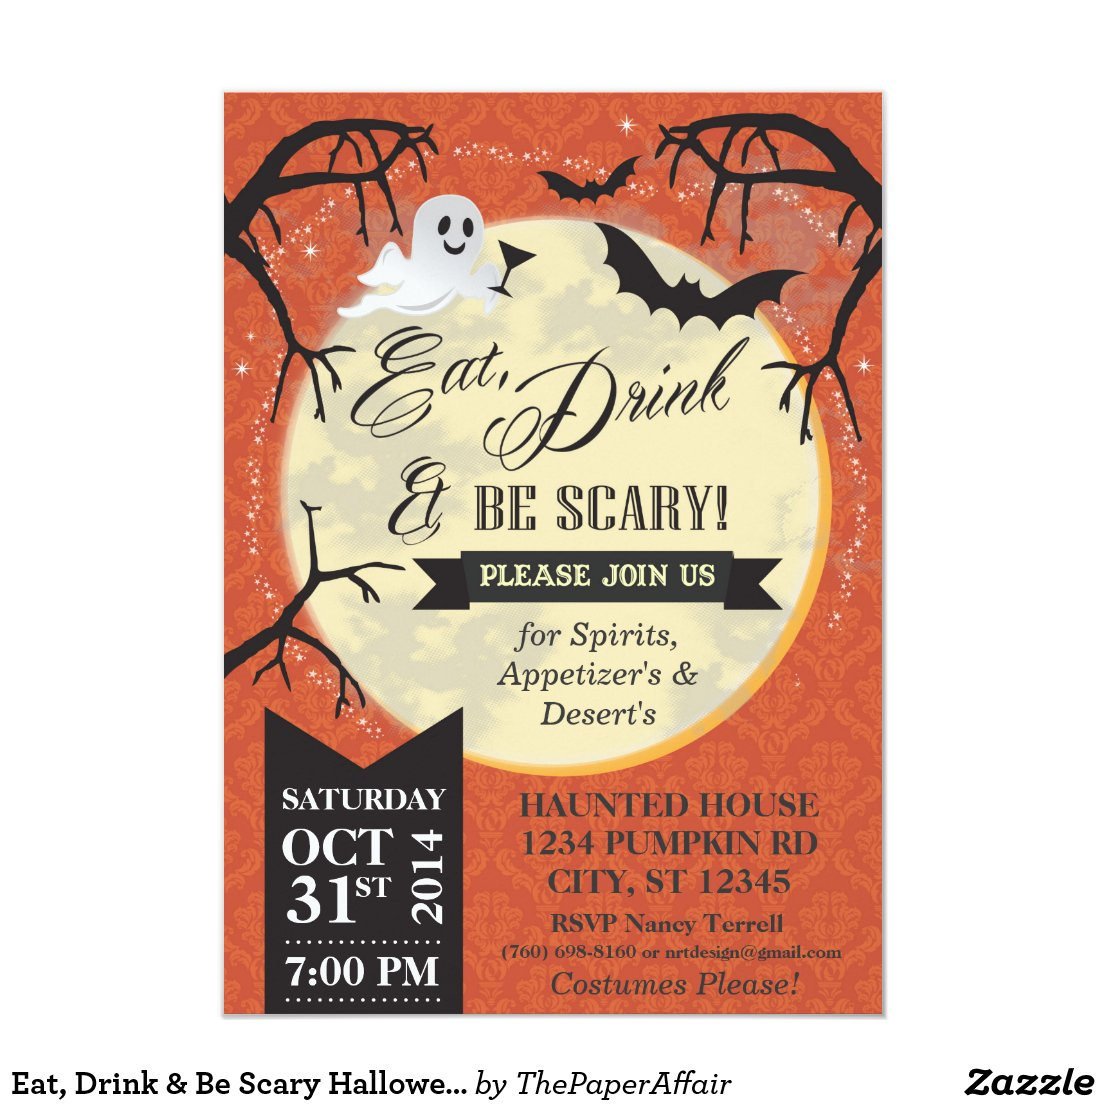 Eat, Drink & Be Scary Halloween Invite - Orange